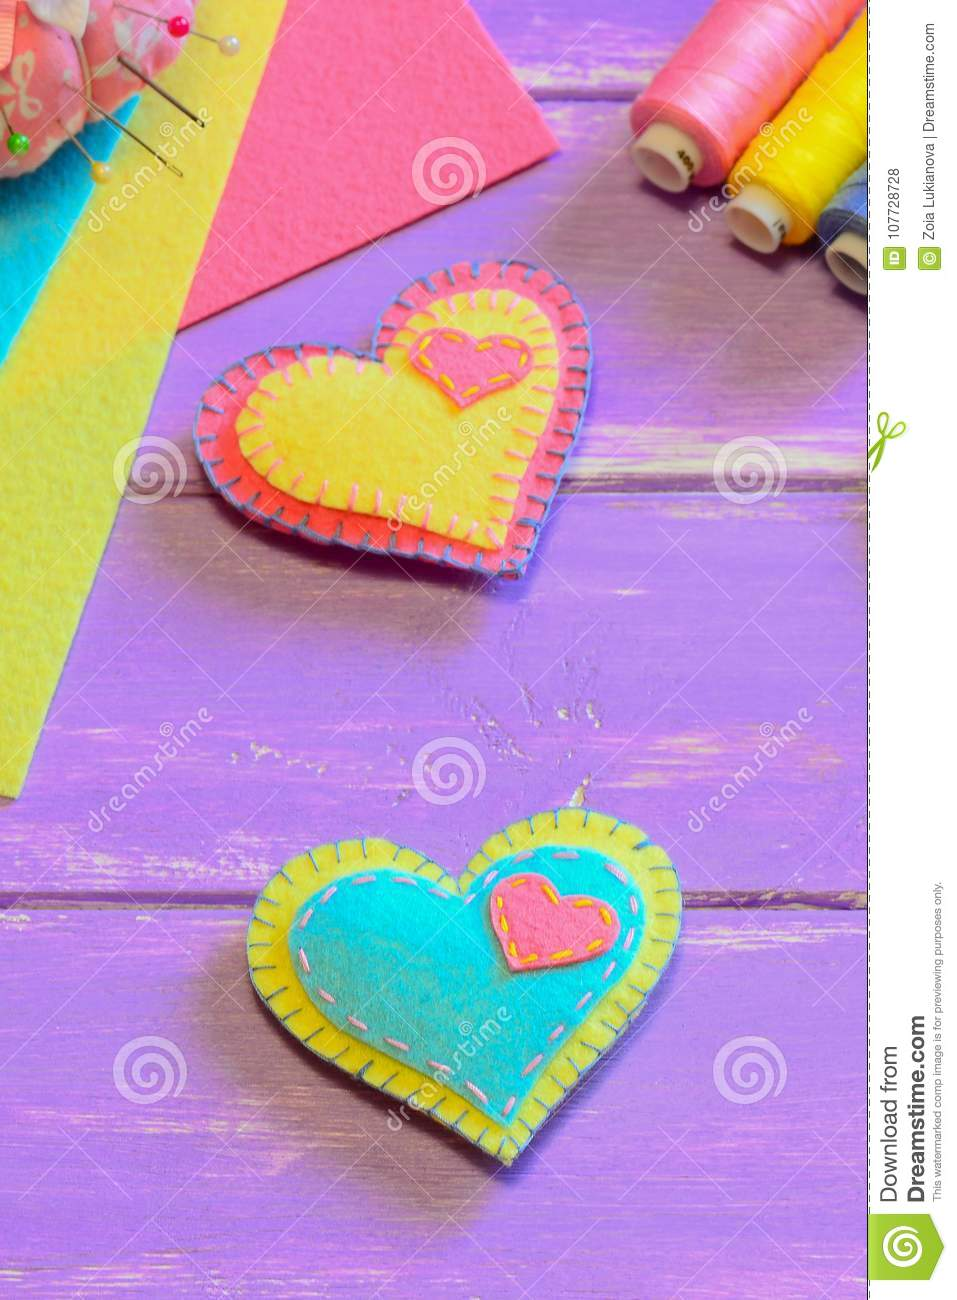 Lovely felt hearts. Valentines Day symbols. Cute homemade Valentines day gifts. Simple hand sewing project for kids. Vertical phot